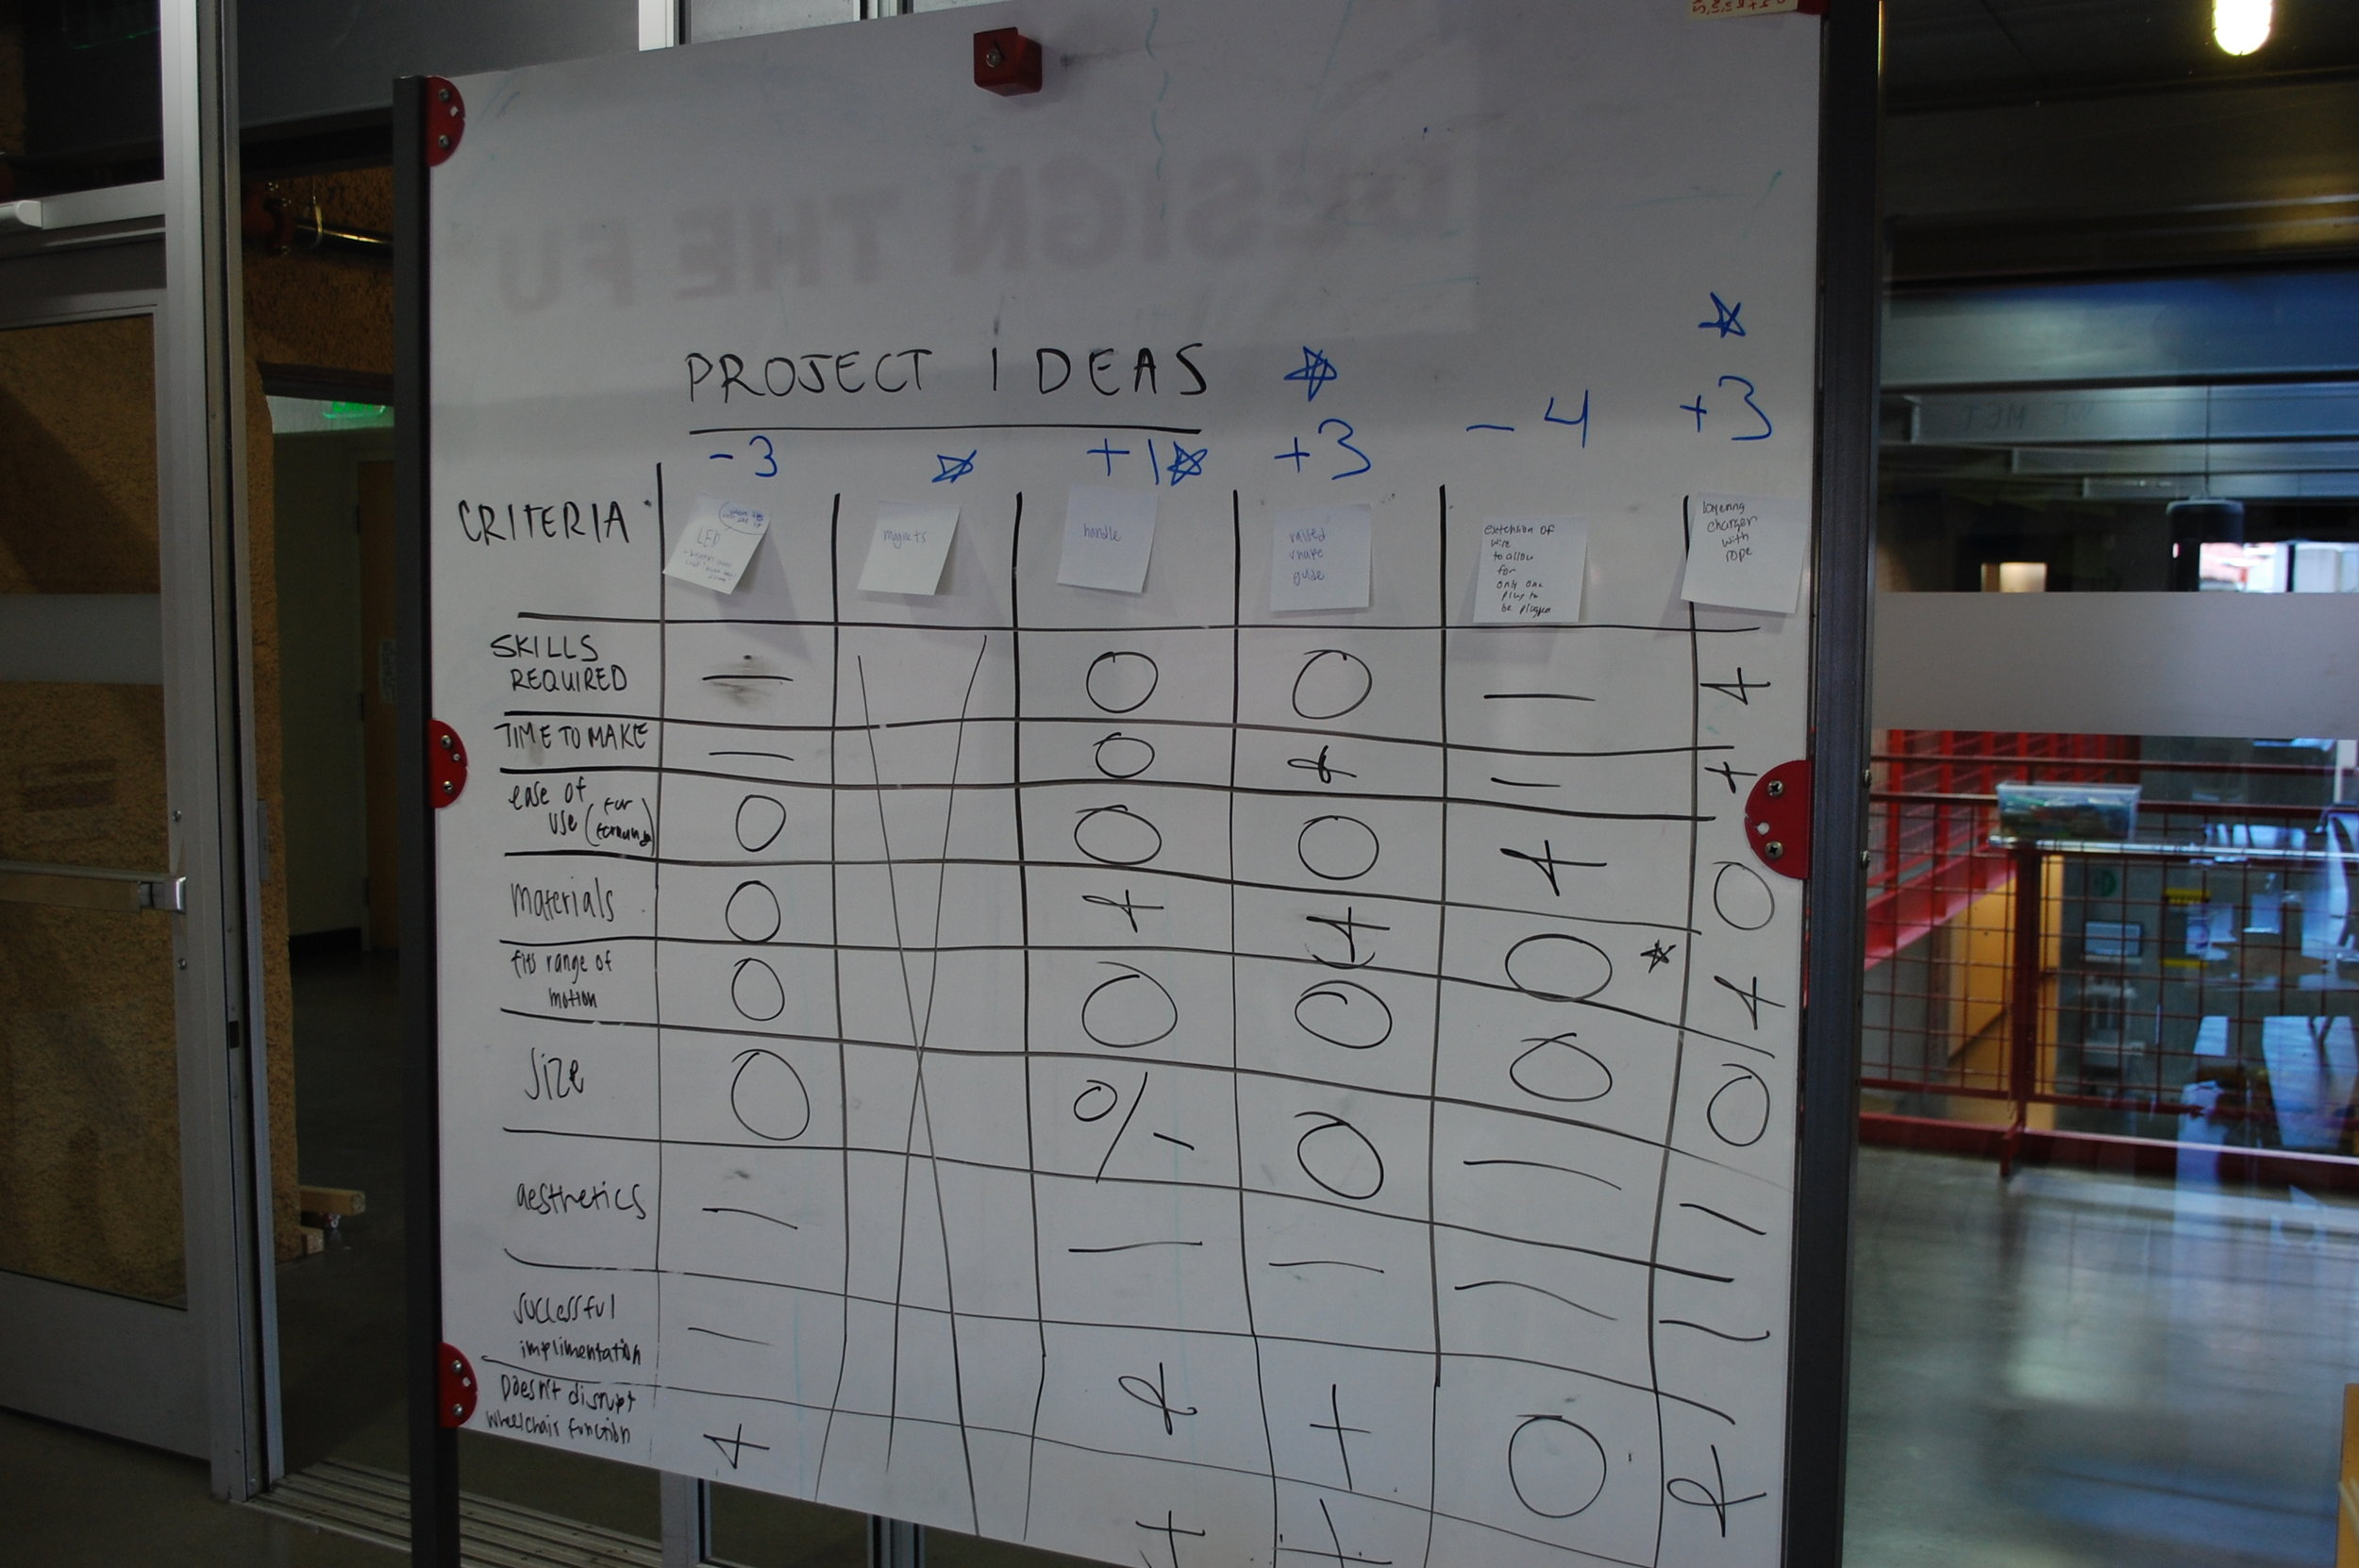 A white board with post its notes